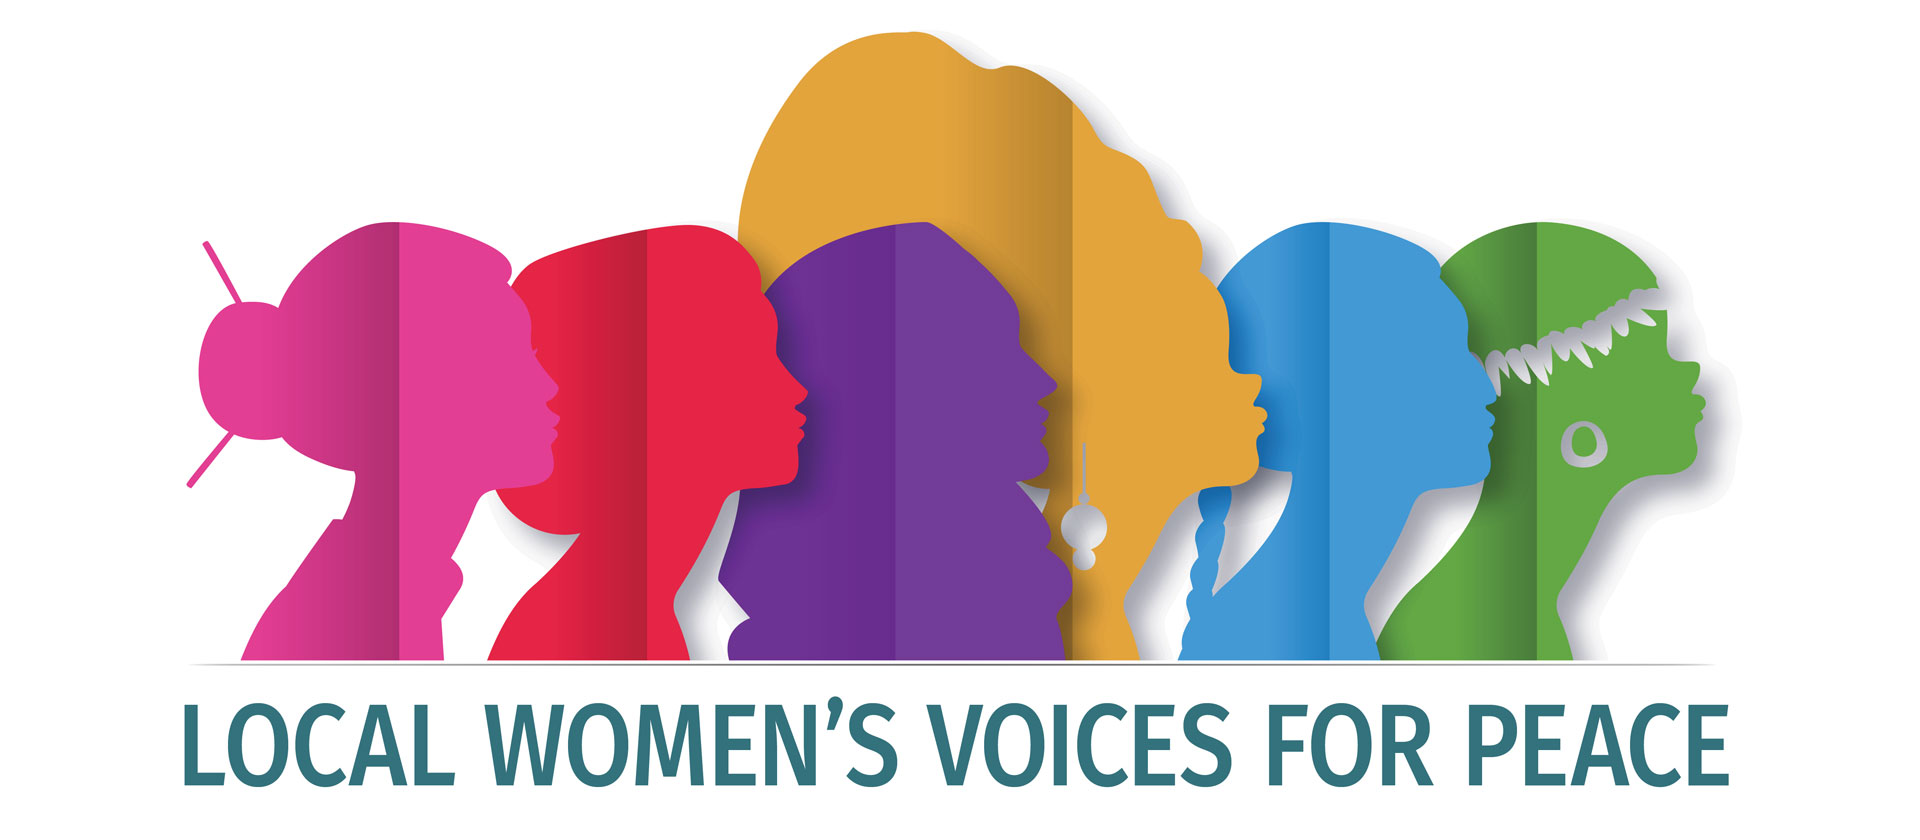 Local Women's Voices for Peace E-Conference Announces Global Sessions